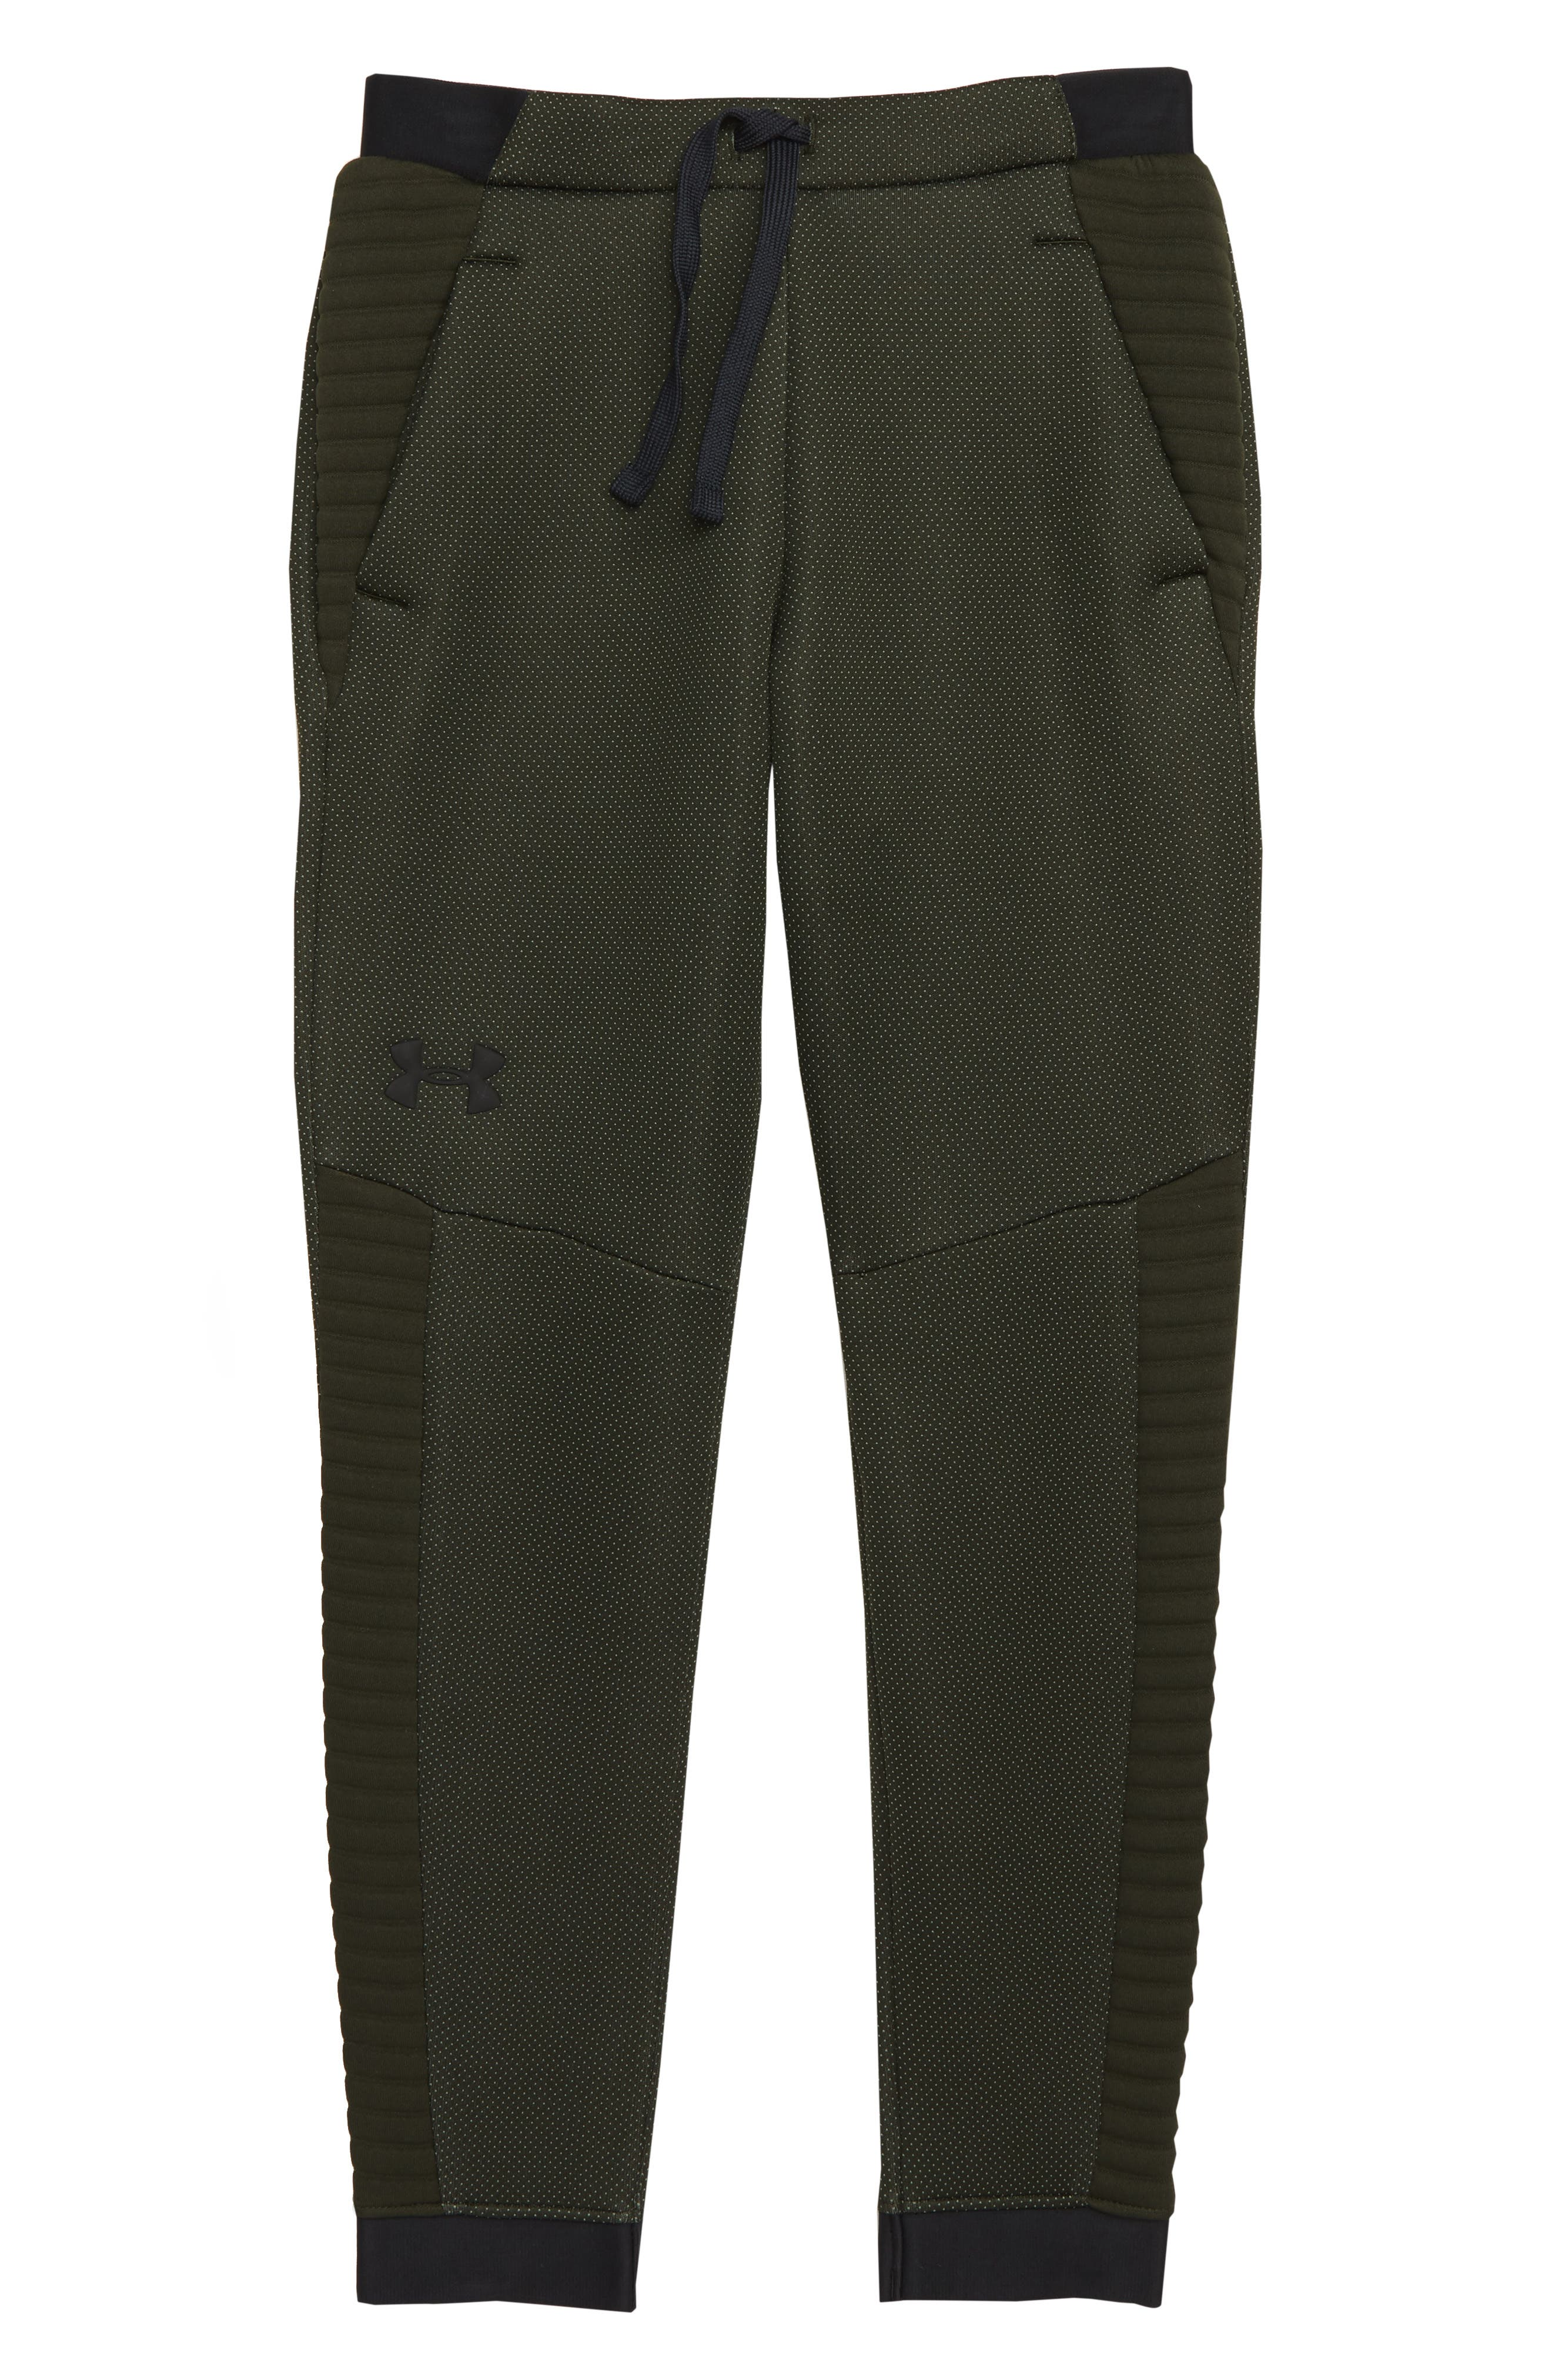 Boys Under Armour Unstoppable Move Pants Size L (14)  Green